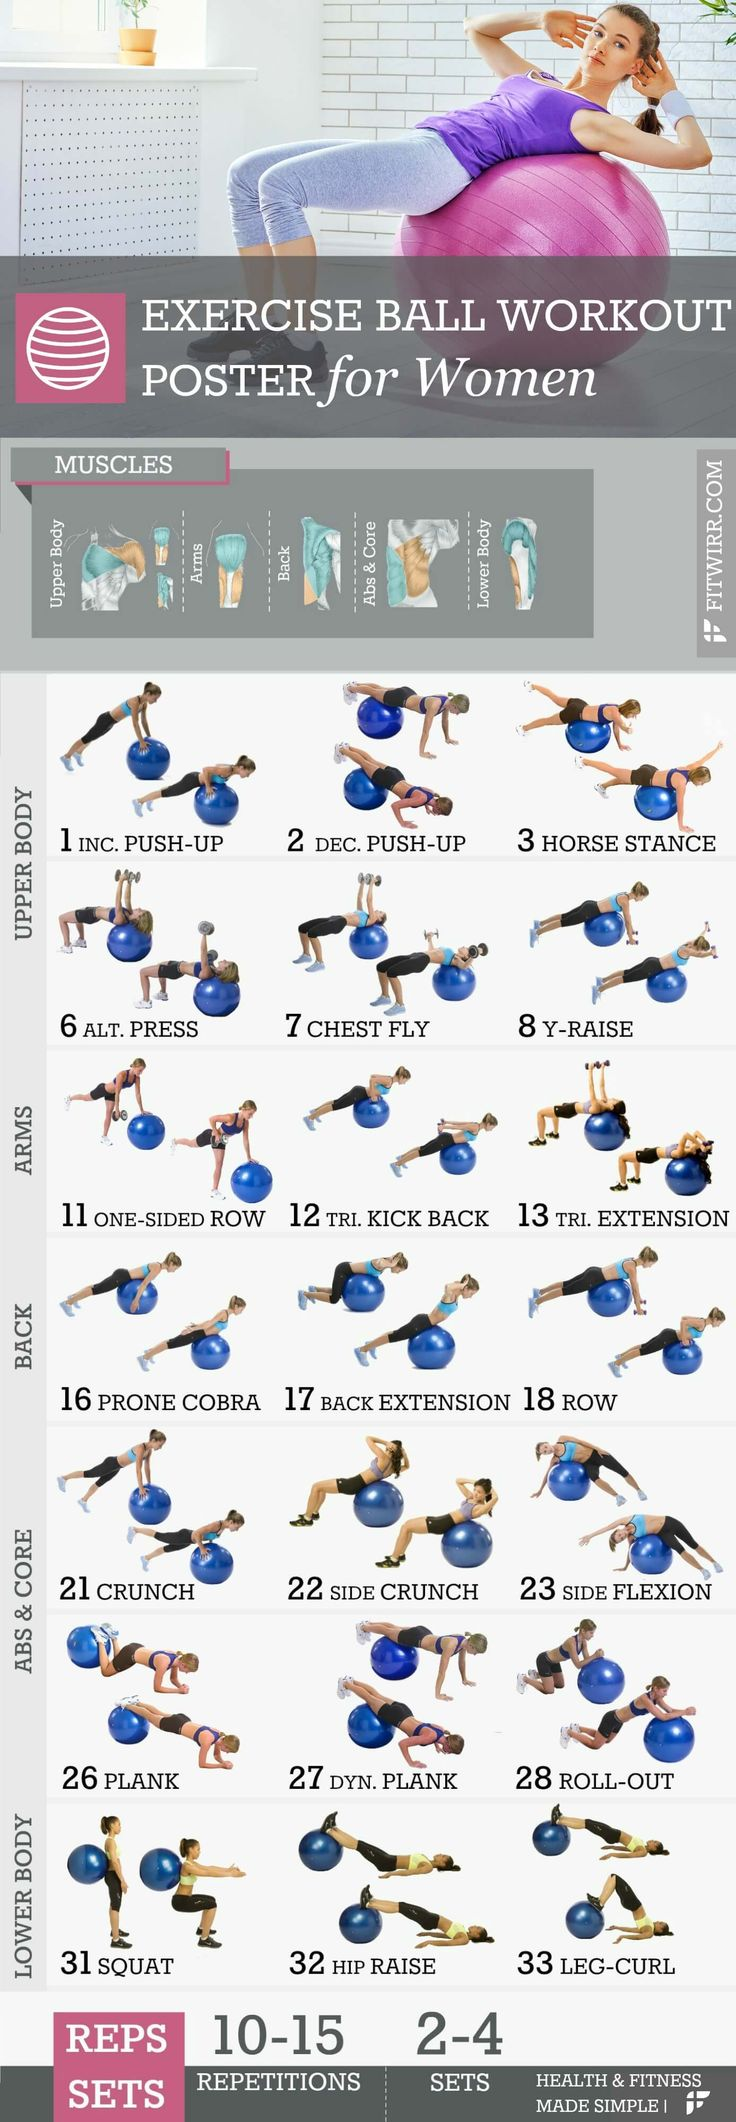 Best exercise ball workouts for women. #exerciseballworkout